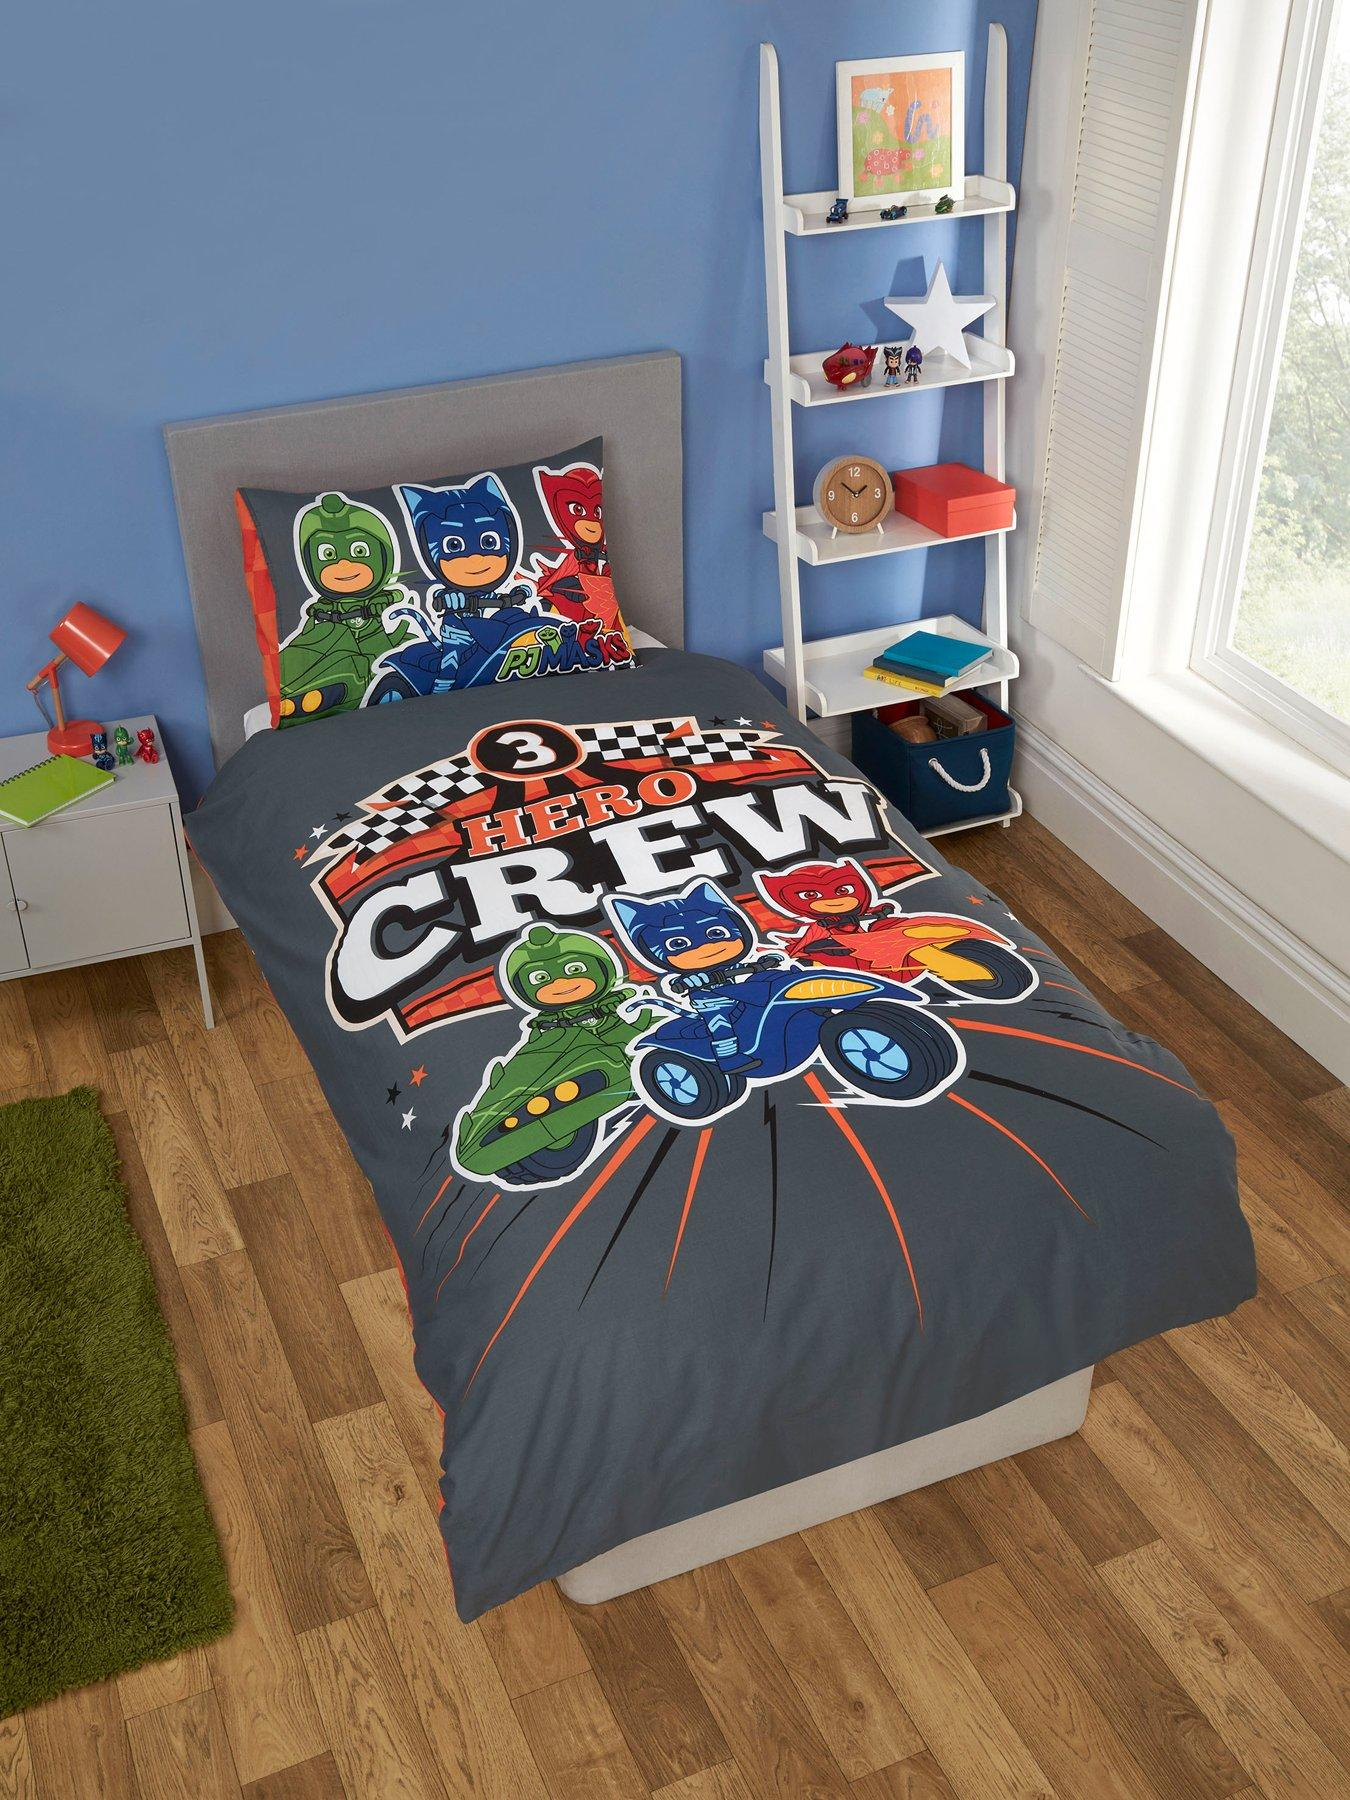 Owlette and Gekko Superheroes Of The City PJ Mask Quilt Single Cover Set Catboy